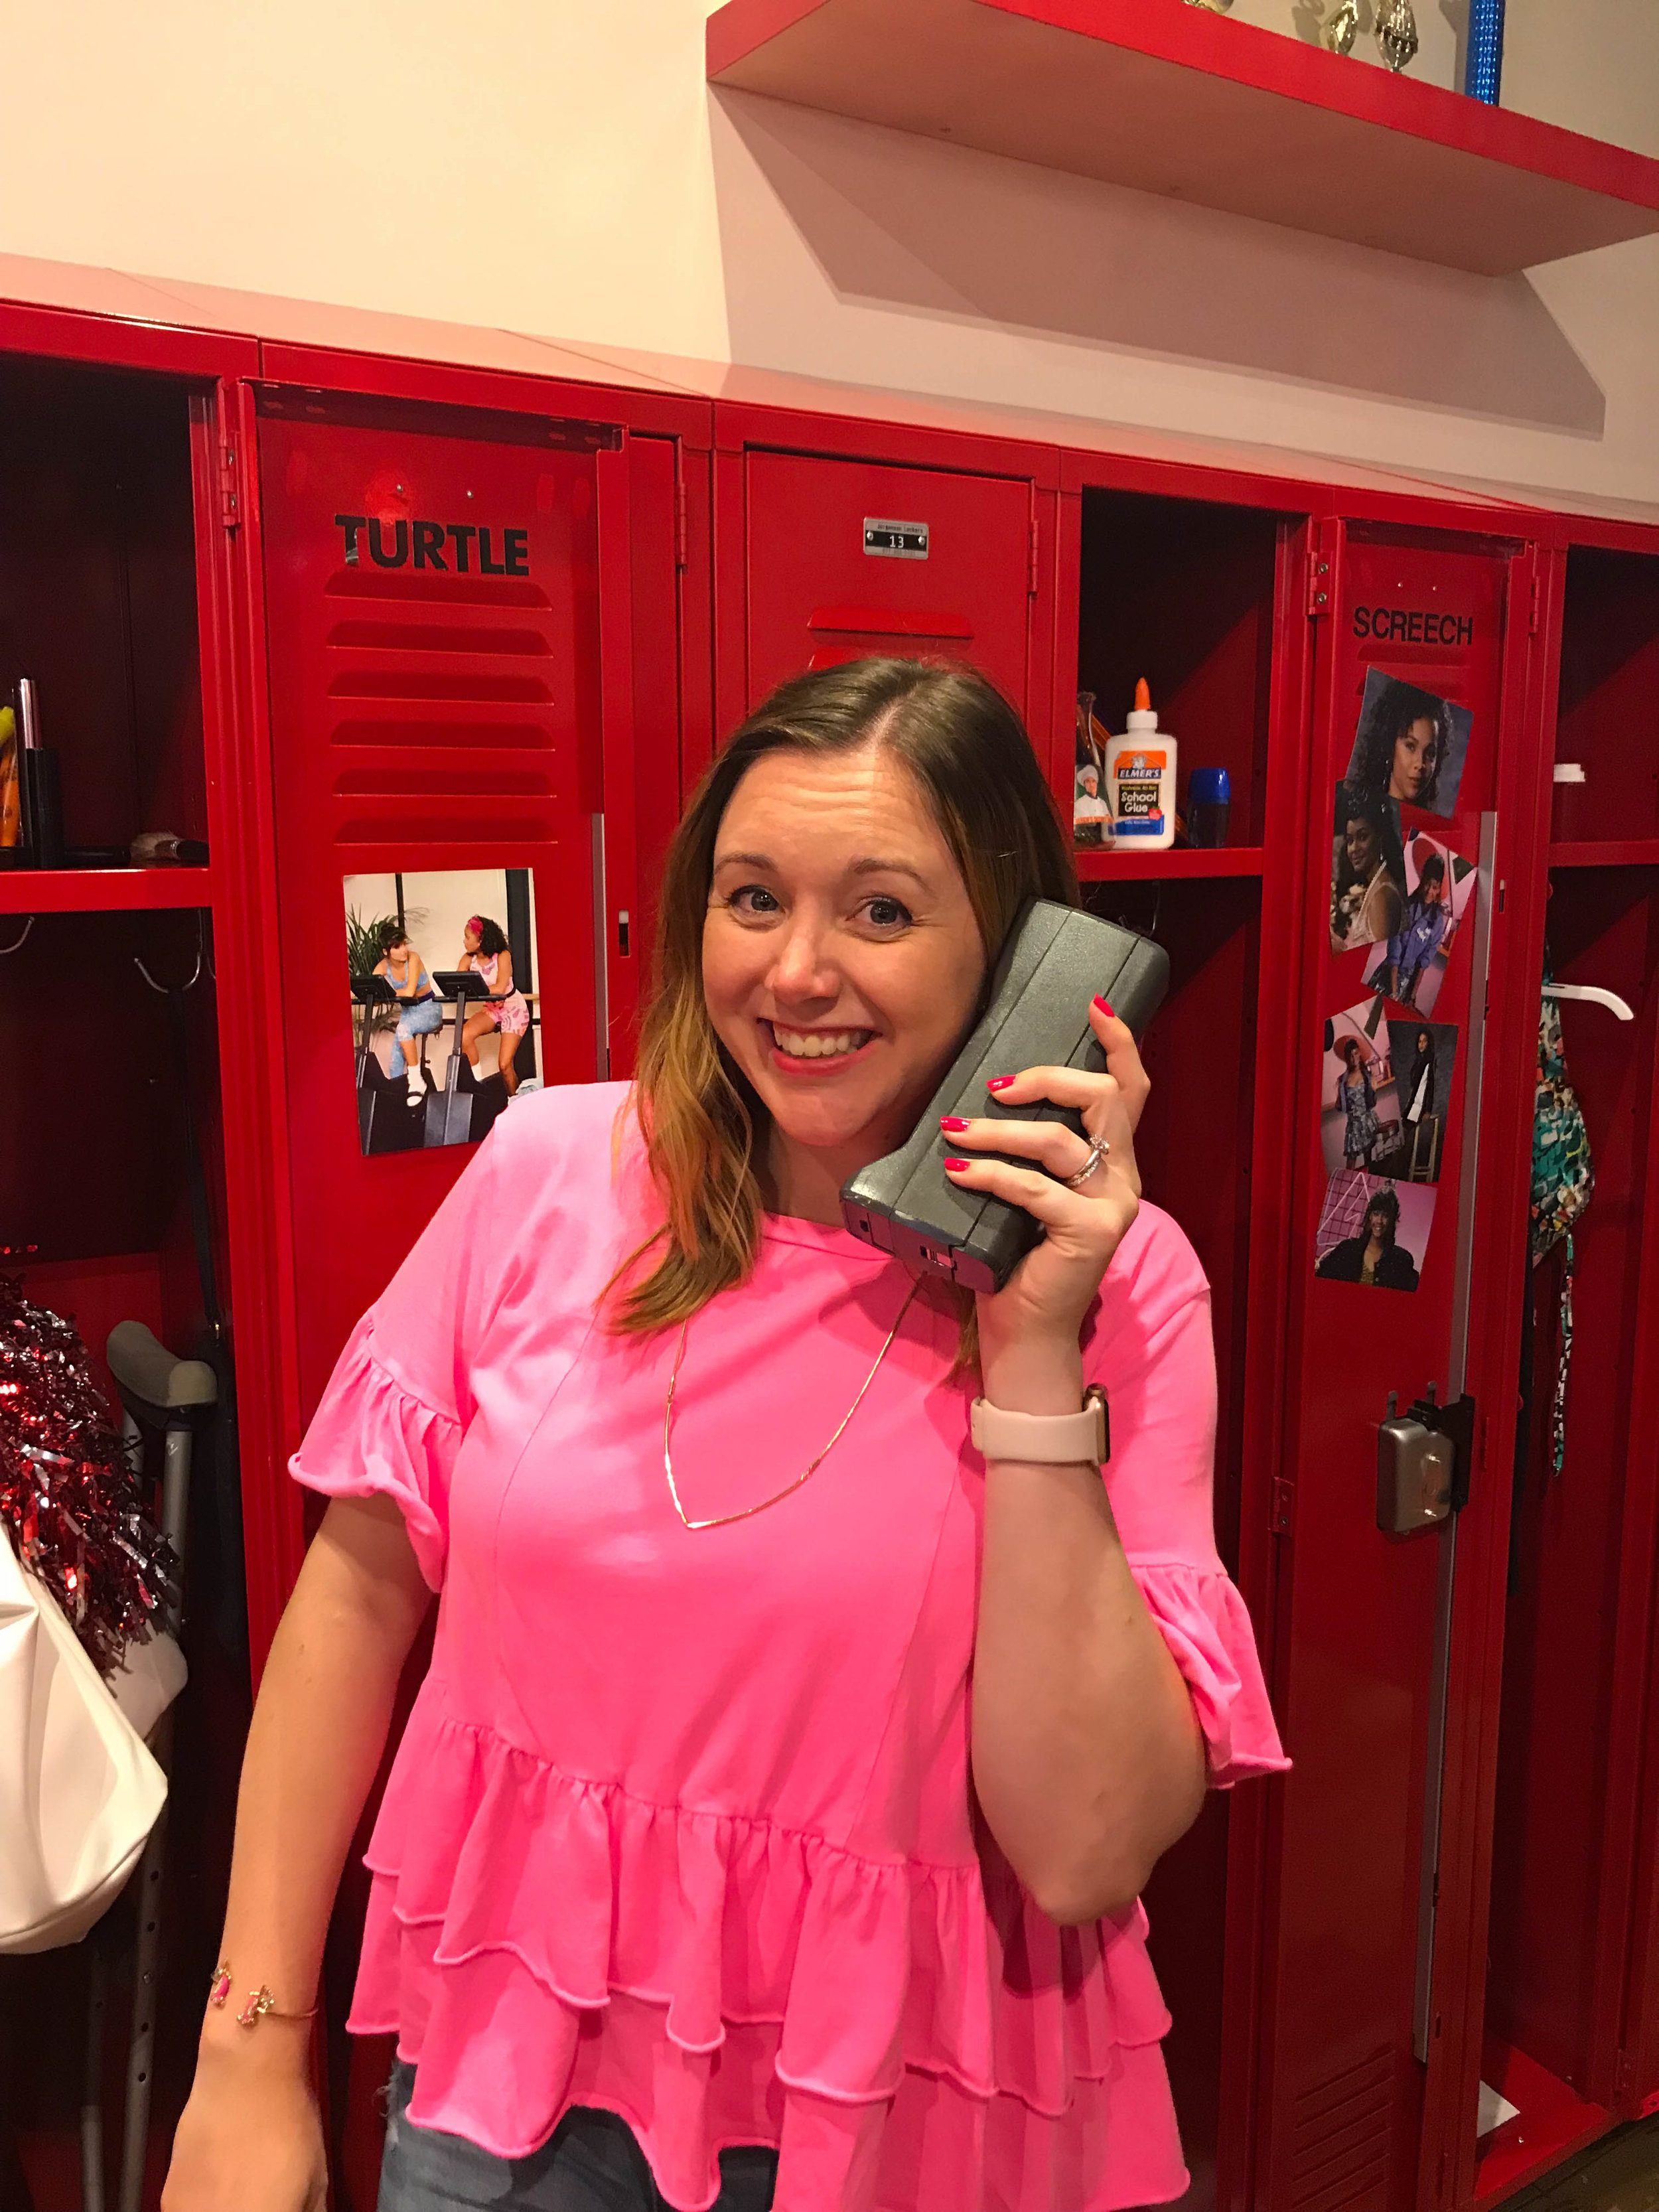 Saved By the Max - Saved by the Bell Pop-up 90's Cell Phone